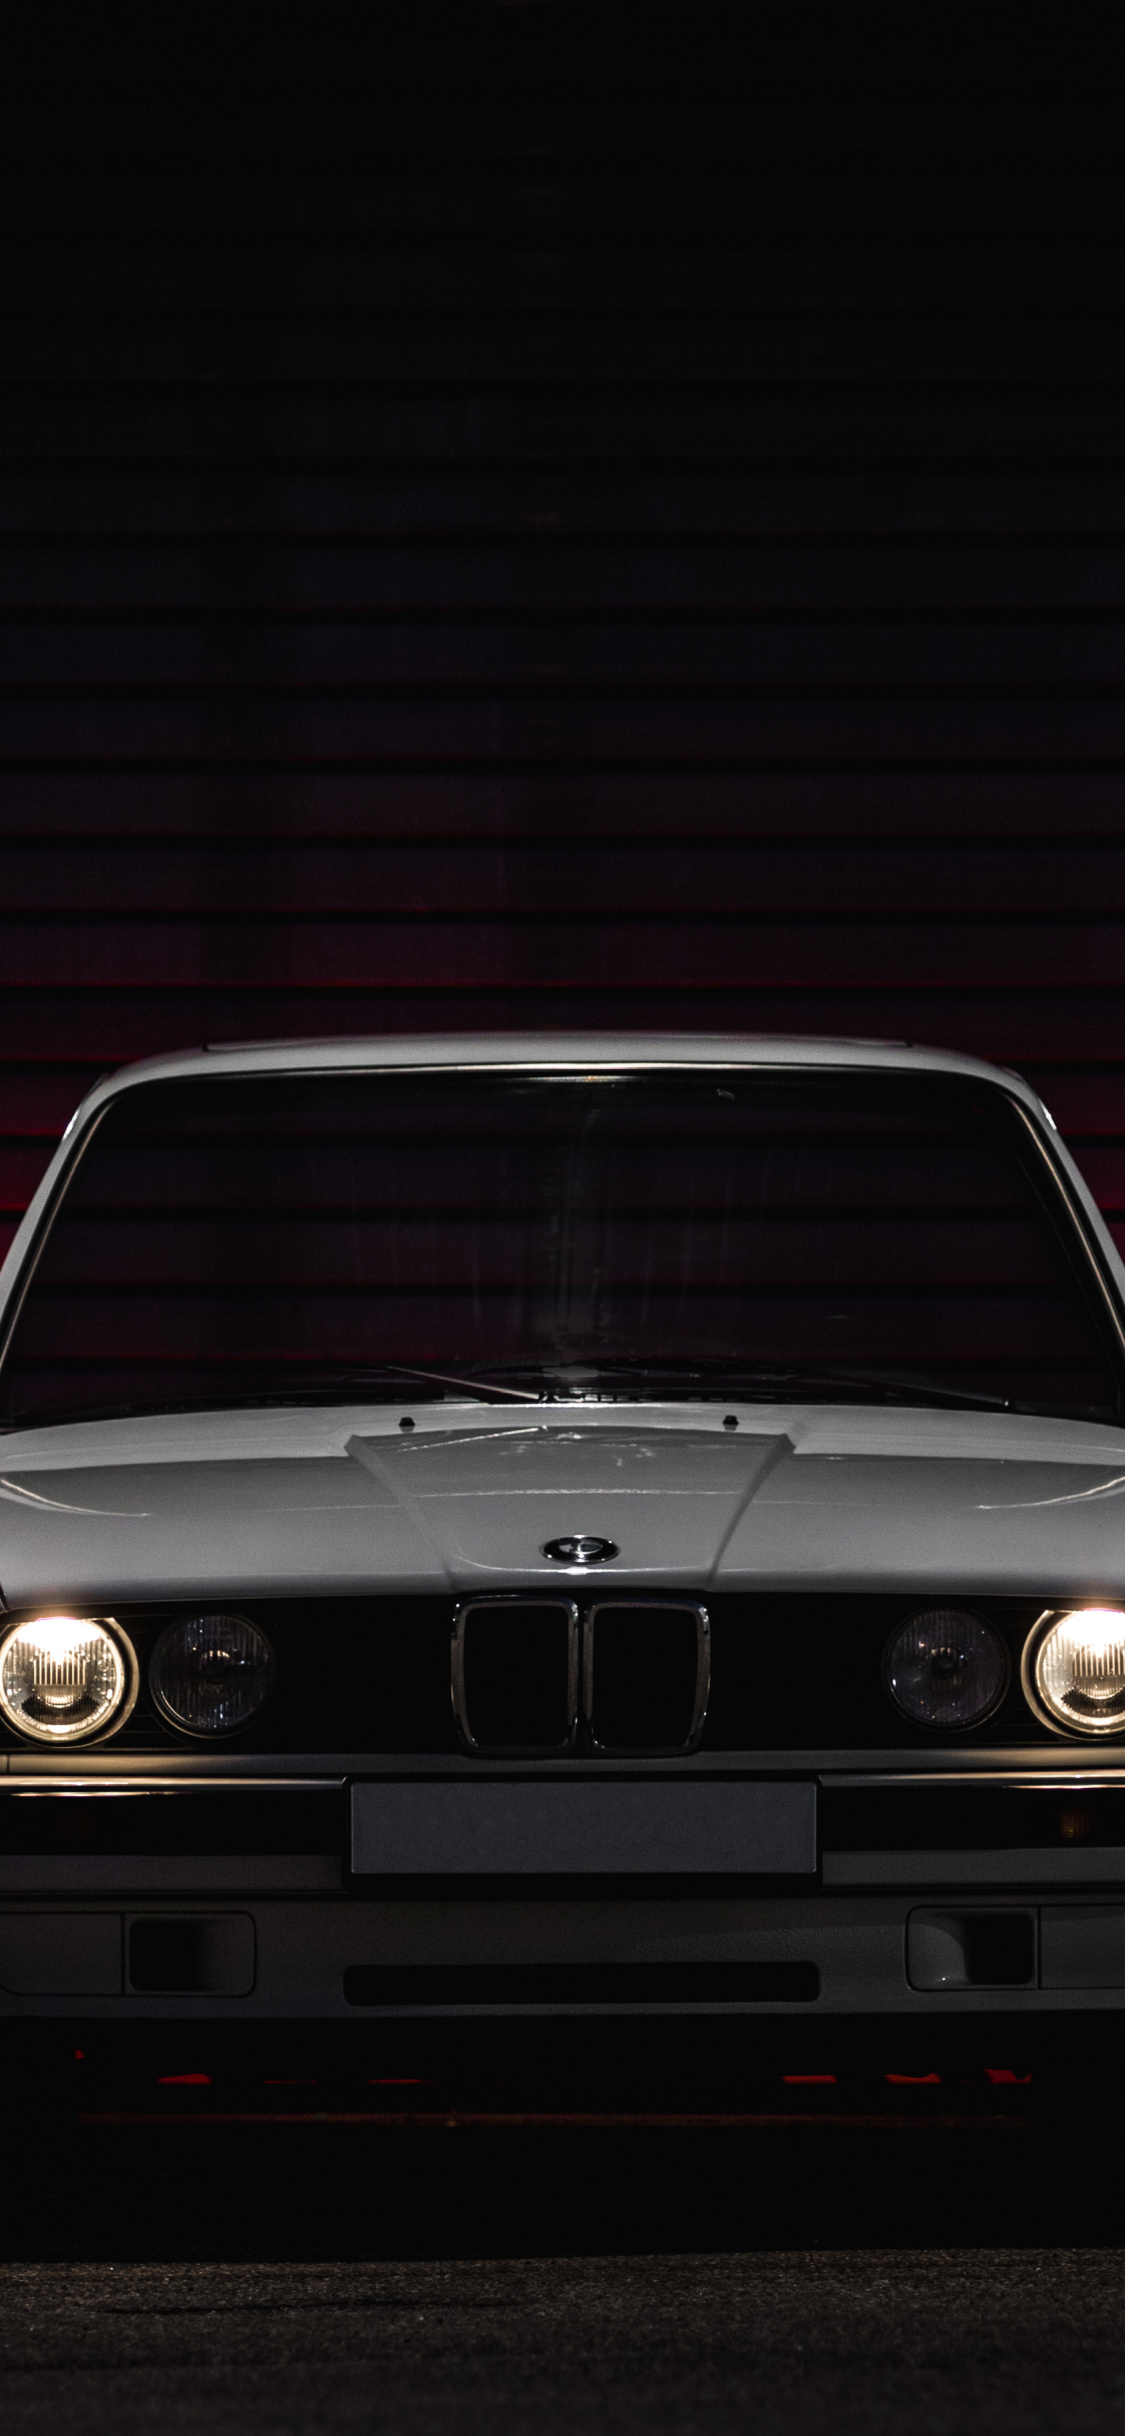 Bmw E30 Classic Car Front Wallpaper Iphone X Bmw Backgrounds 1125x2436 Download Hd Wallpaper Wallpapertip